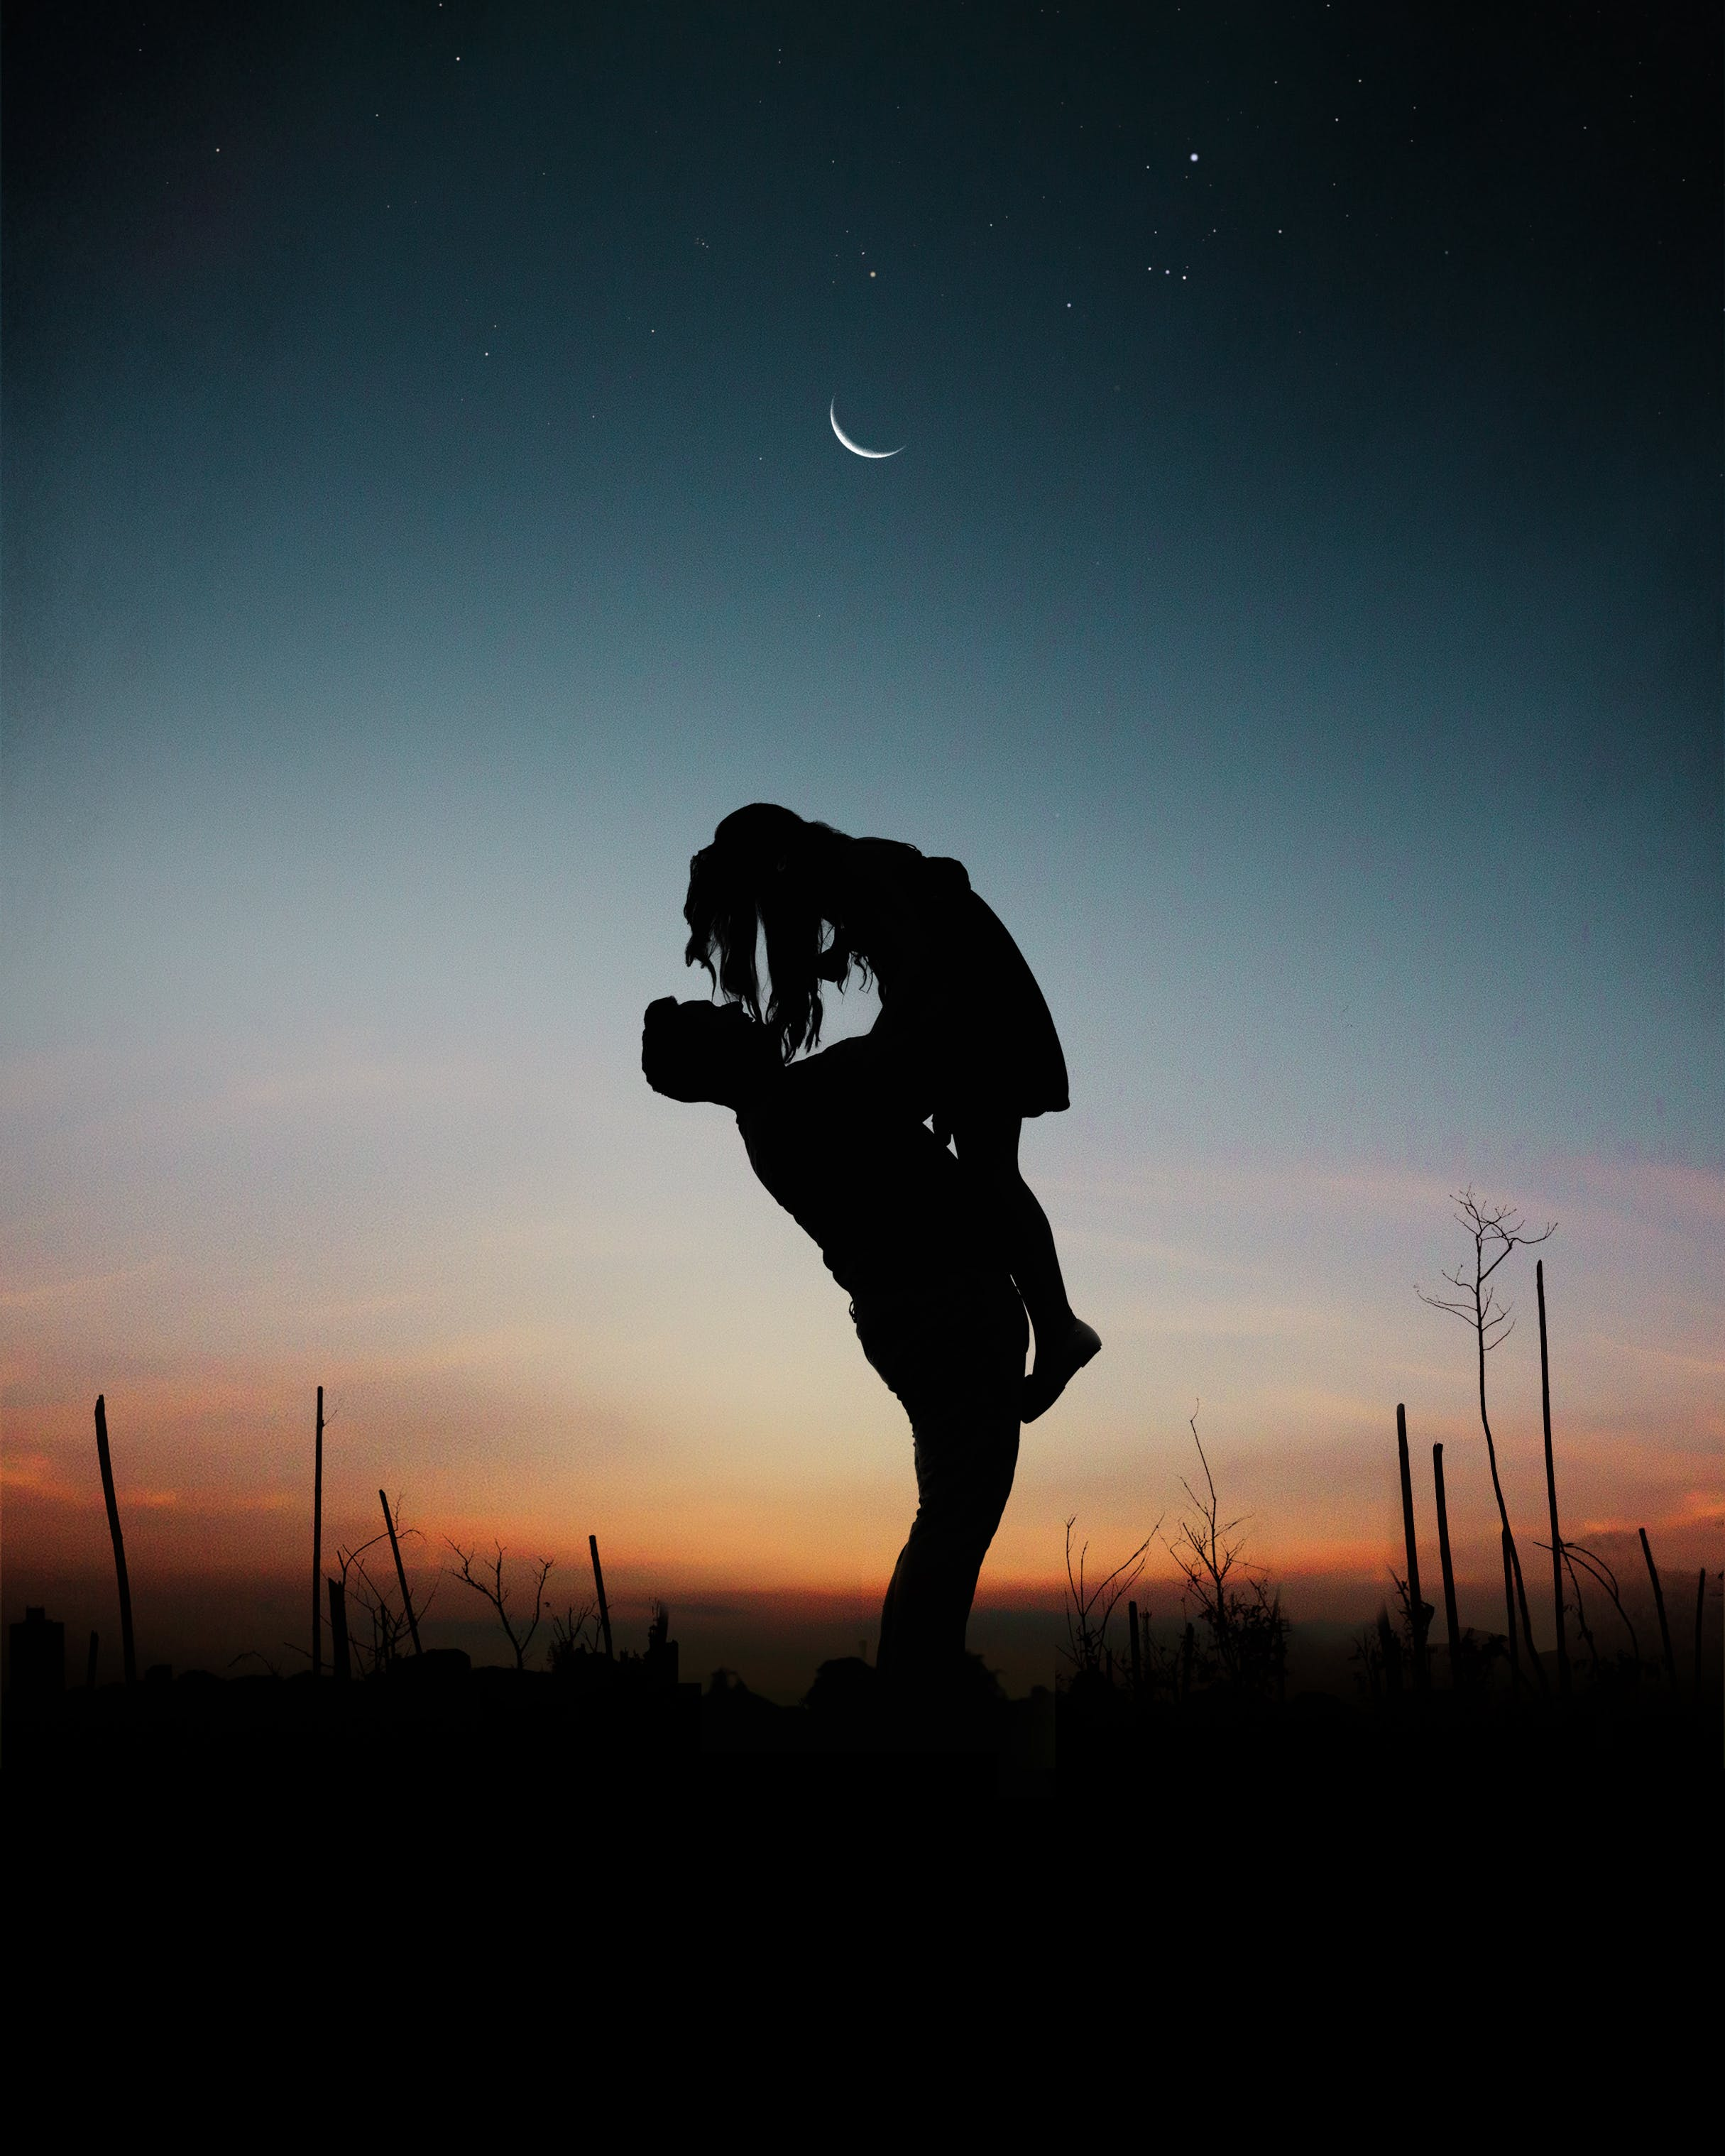 Silhouette of Man Lifting Woman